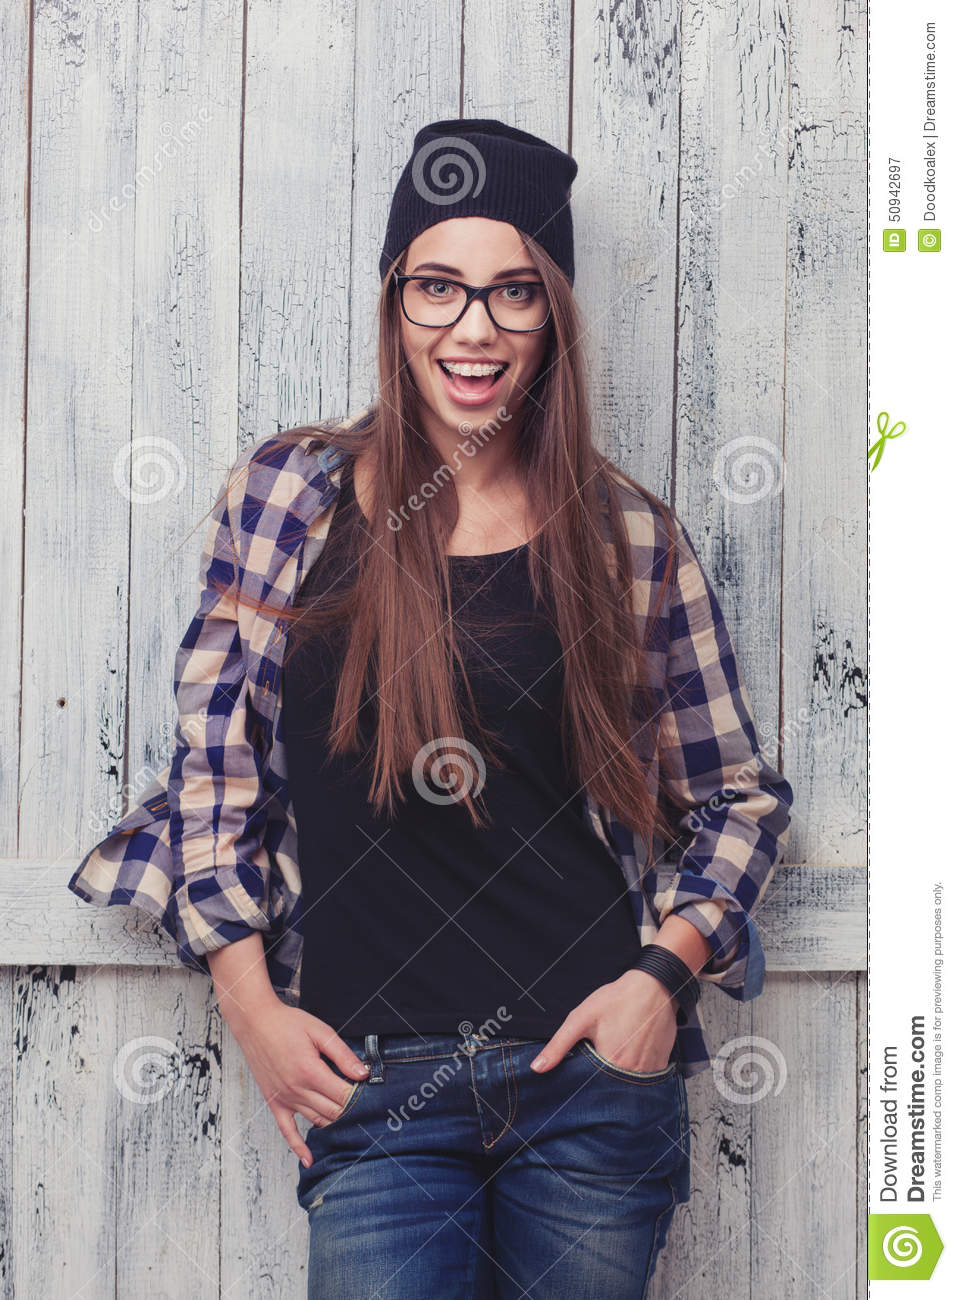 Your Girl with beanie and glasses porn opinion